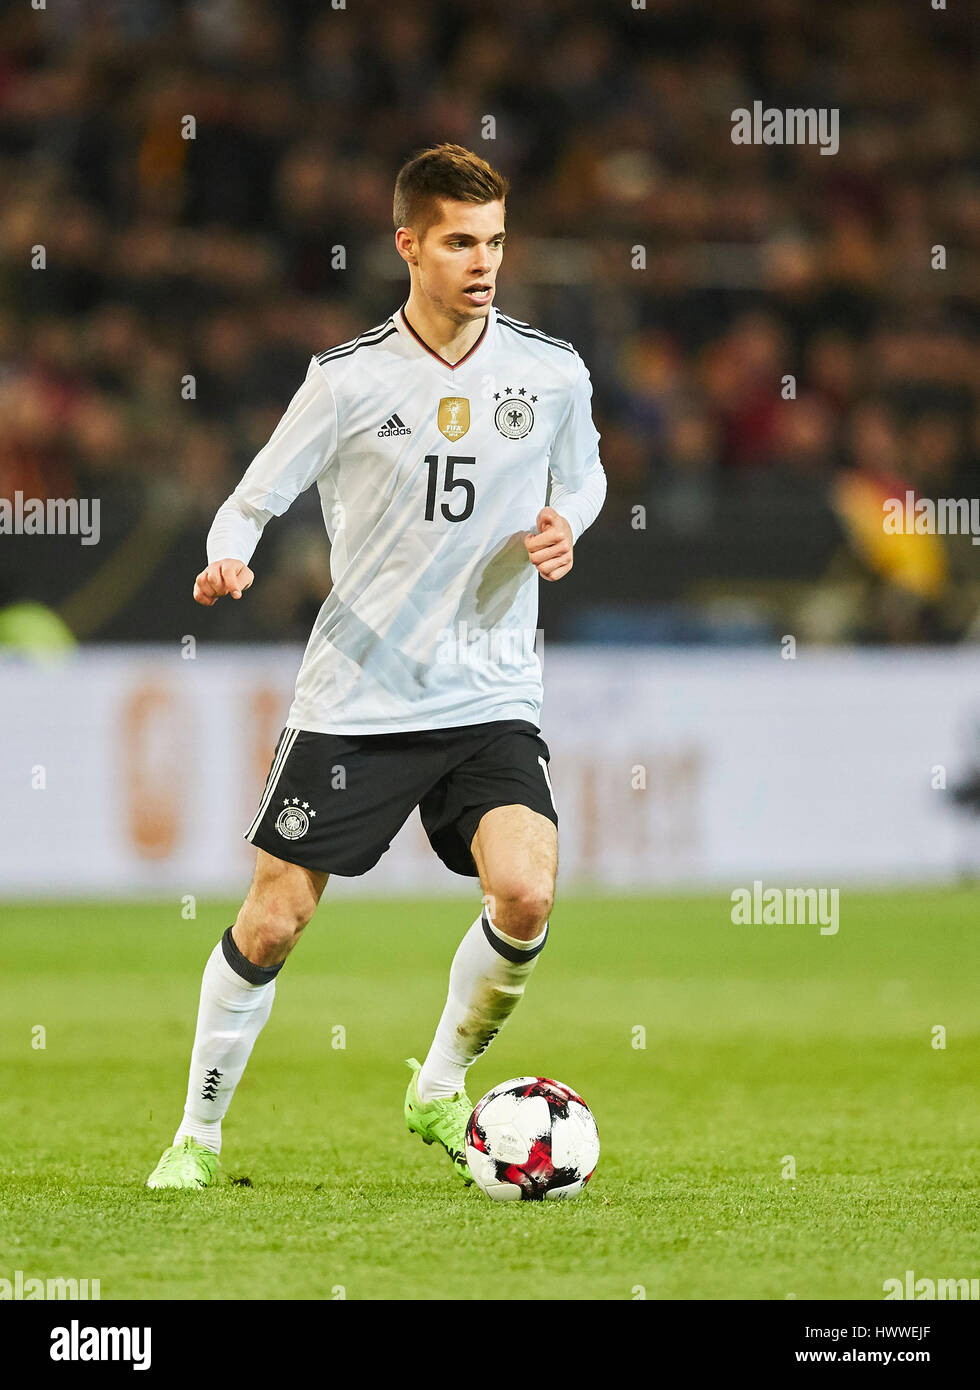 Dortmund Germany 22nd Mar 2017 Julian WEIGL DFB 15 drives the